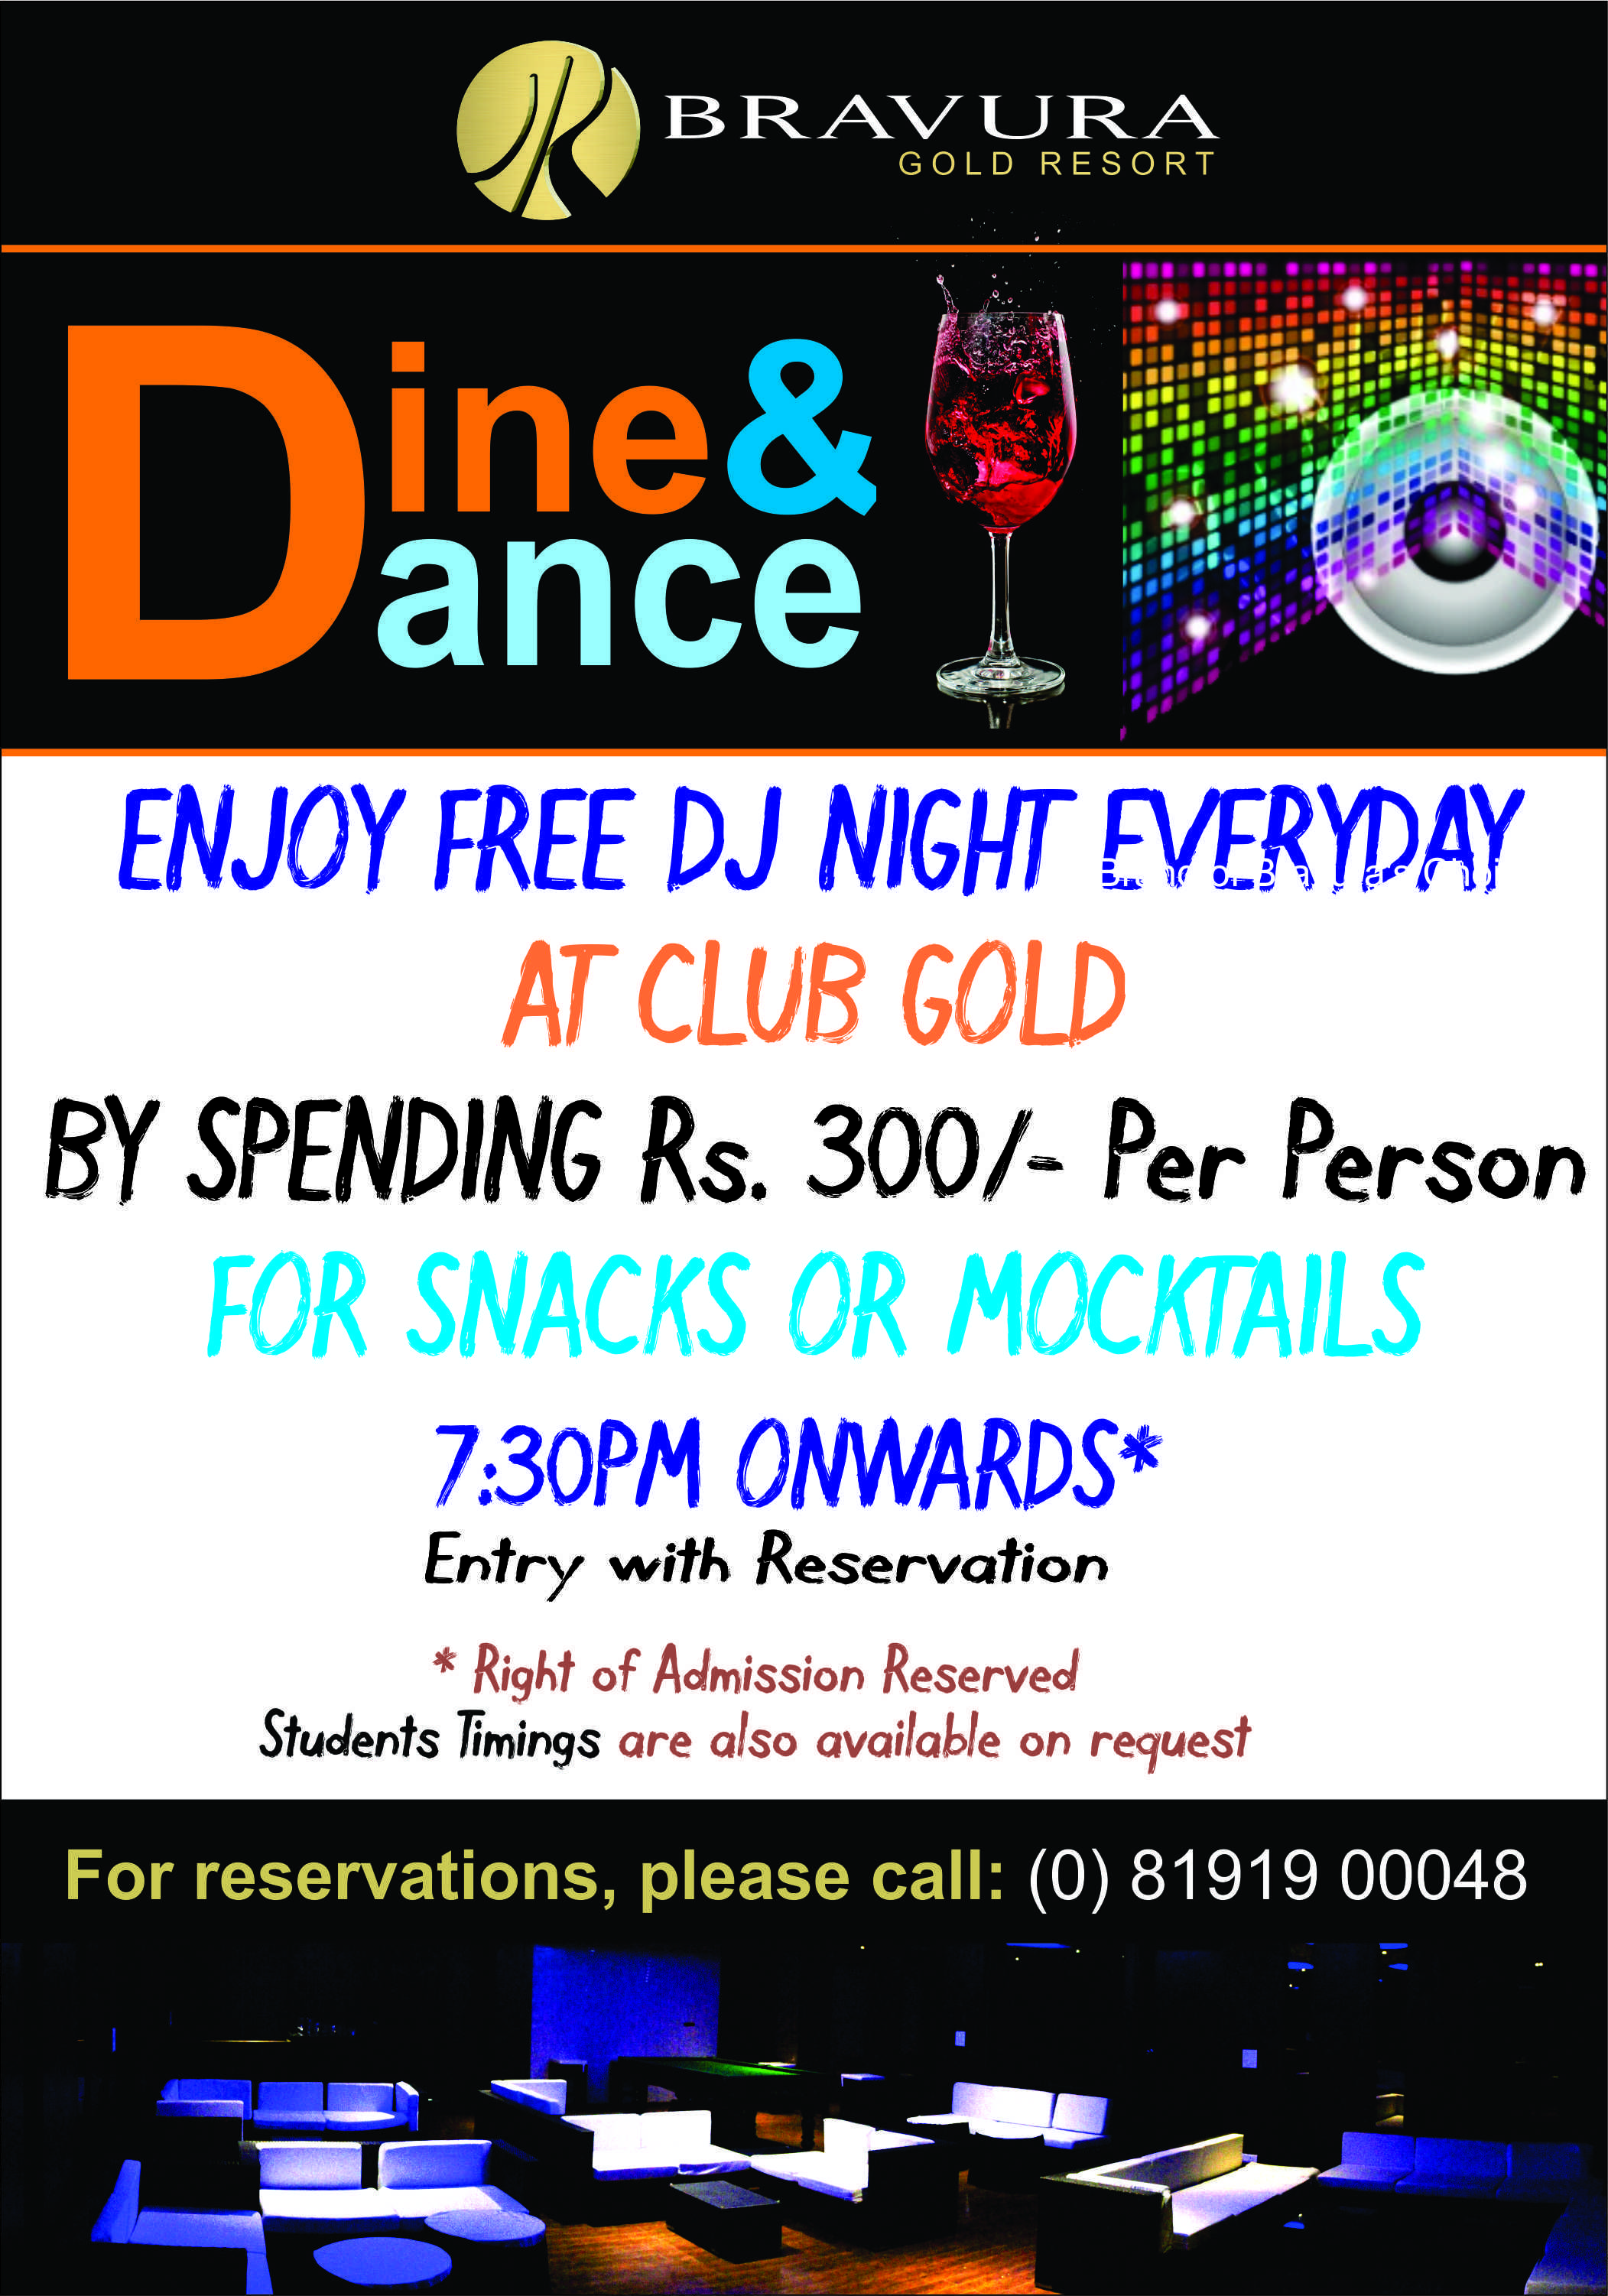 Bravura Gold Resort brings to you special offers on Dine & Dance. Enjoy Free DJ Night Everyday 7:30 PM onwards at Club Gold by spending Just Rs. 300/- Per Person for Snacks or Mocktails. Students Timing are also available on request. For more details / reservations, please visit us at http://www.bravuraresort.com or call us at +91-8191900048.